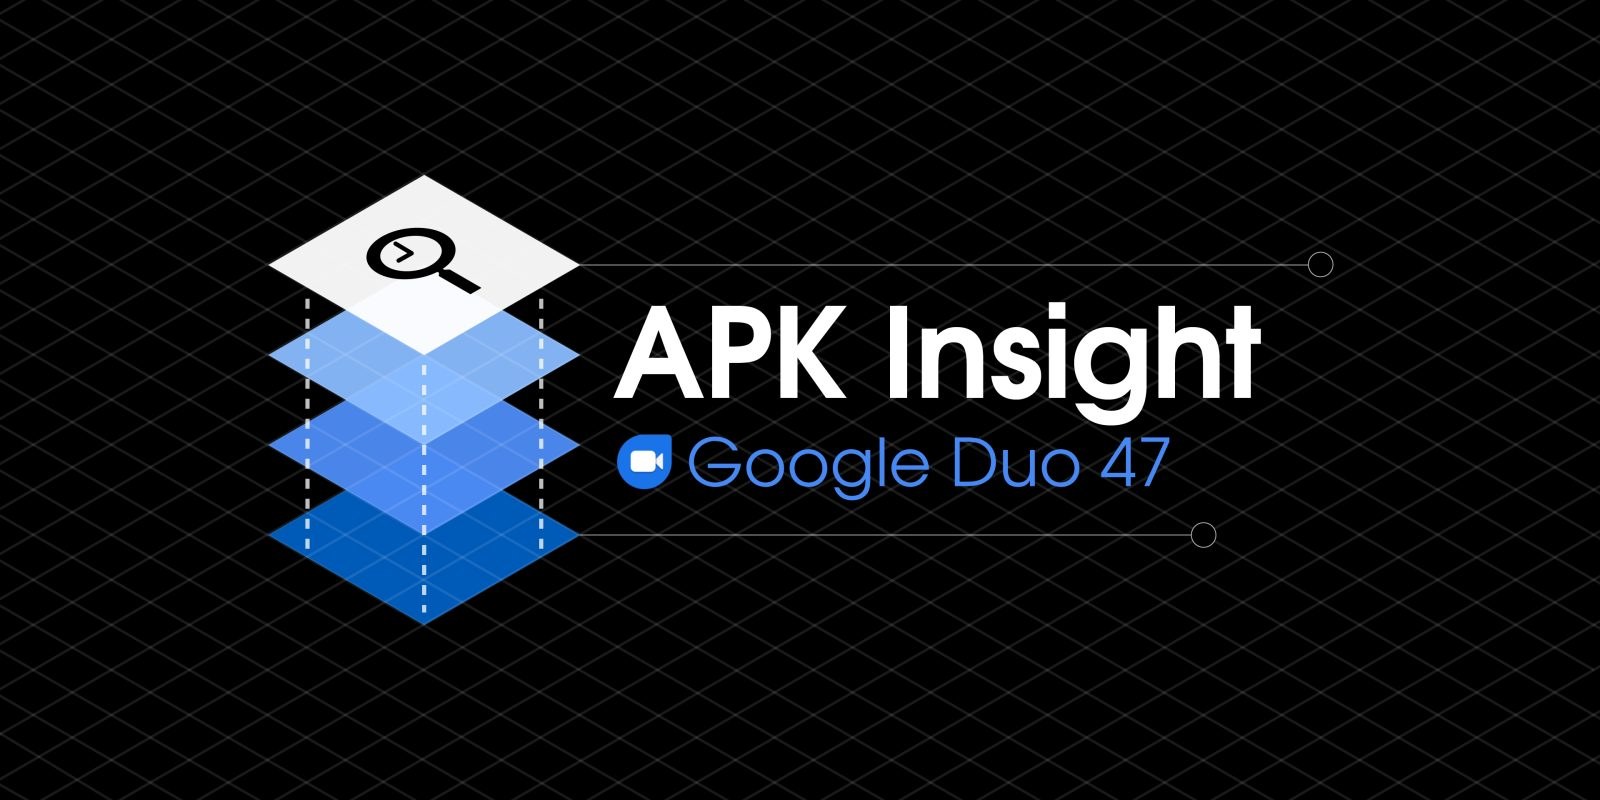 QnA VBage Google Duo 47 preps drawing and adding text on video messages [APK Insight]